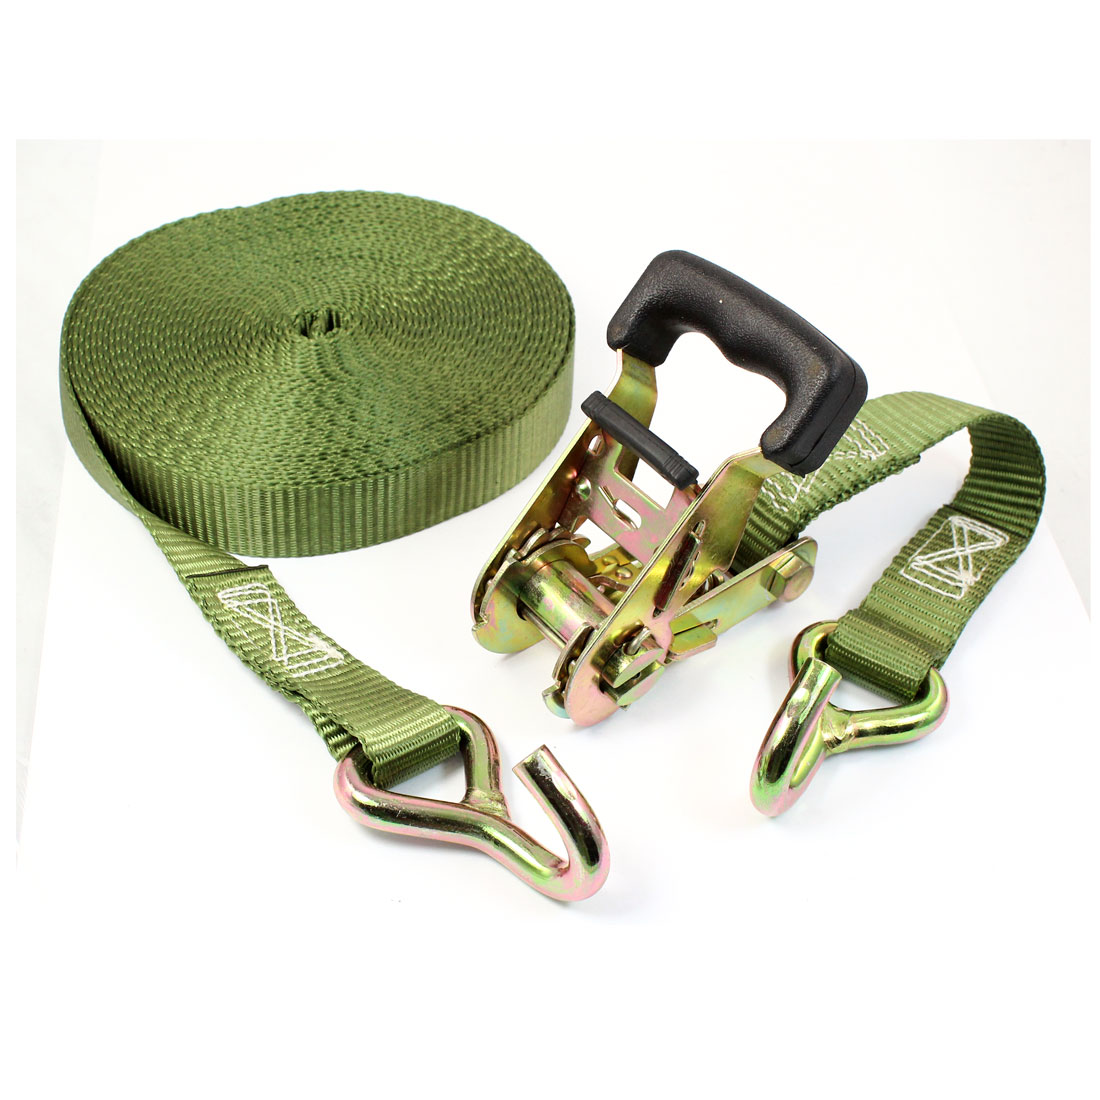 Truck Cargo Binding Metal Hook Ratchet Tie Down Strap 10M 33ft Green